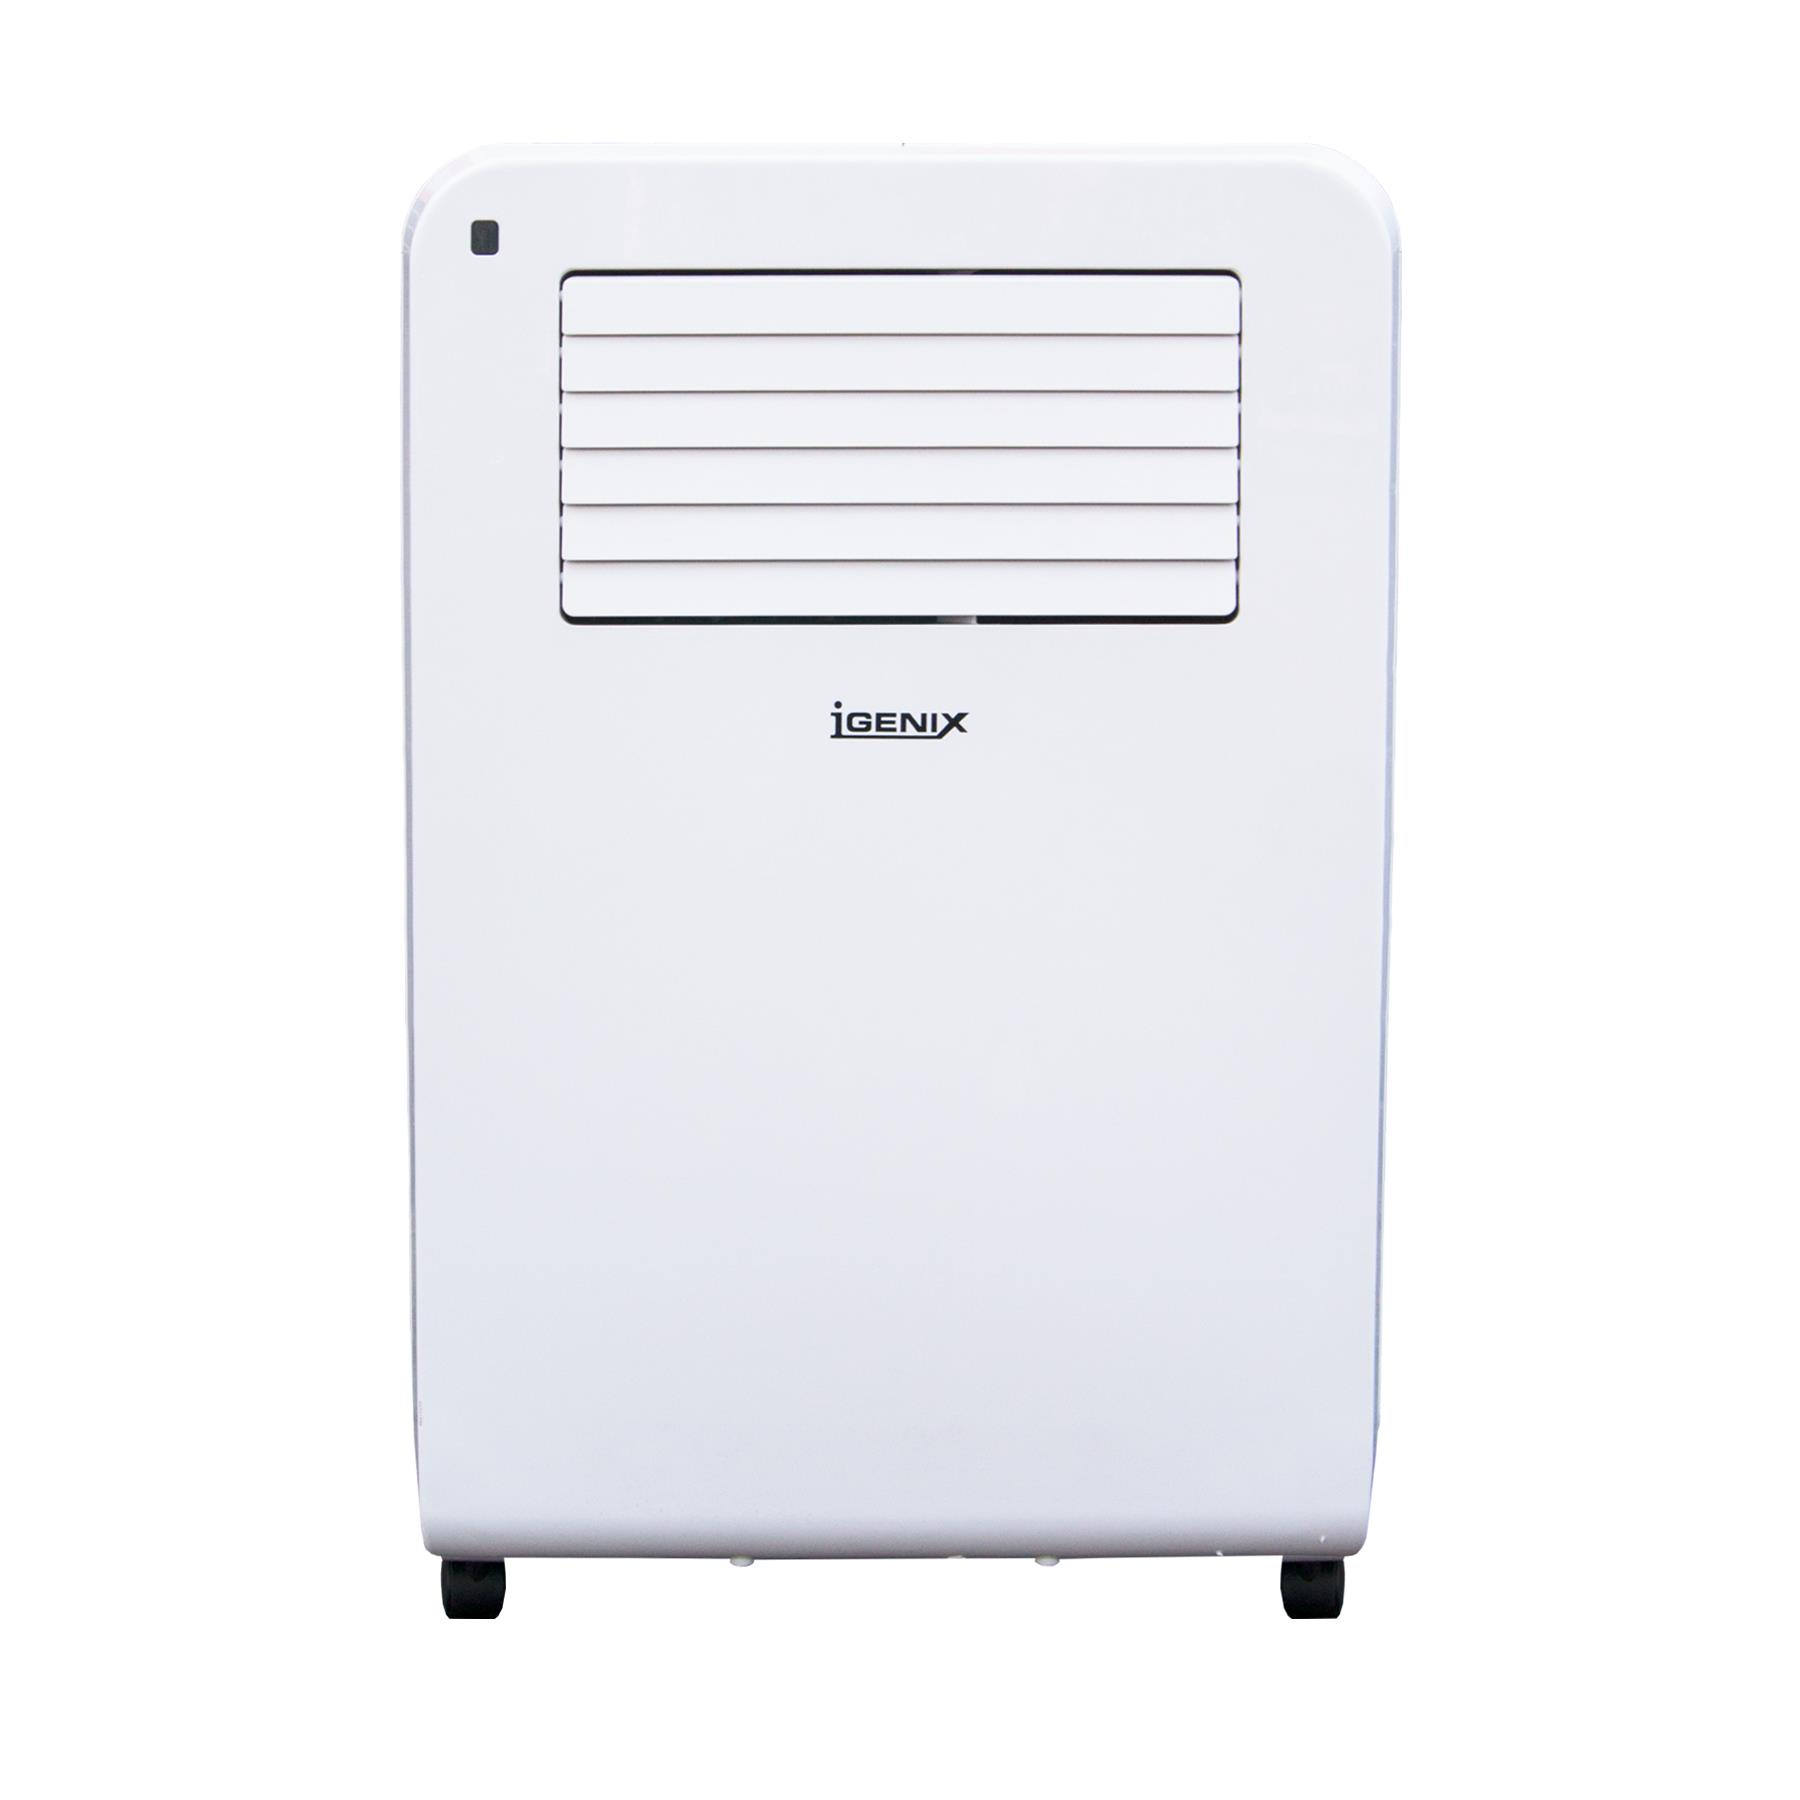 Igenix IG9903 11,500btu portable air conditioning unit Aircon247.com | portable air conditioning ...